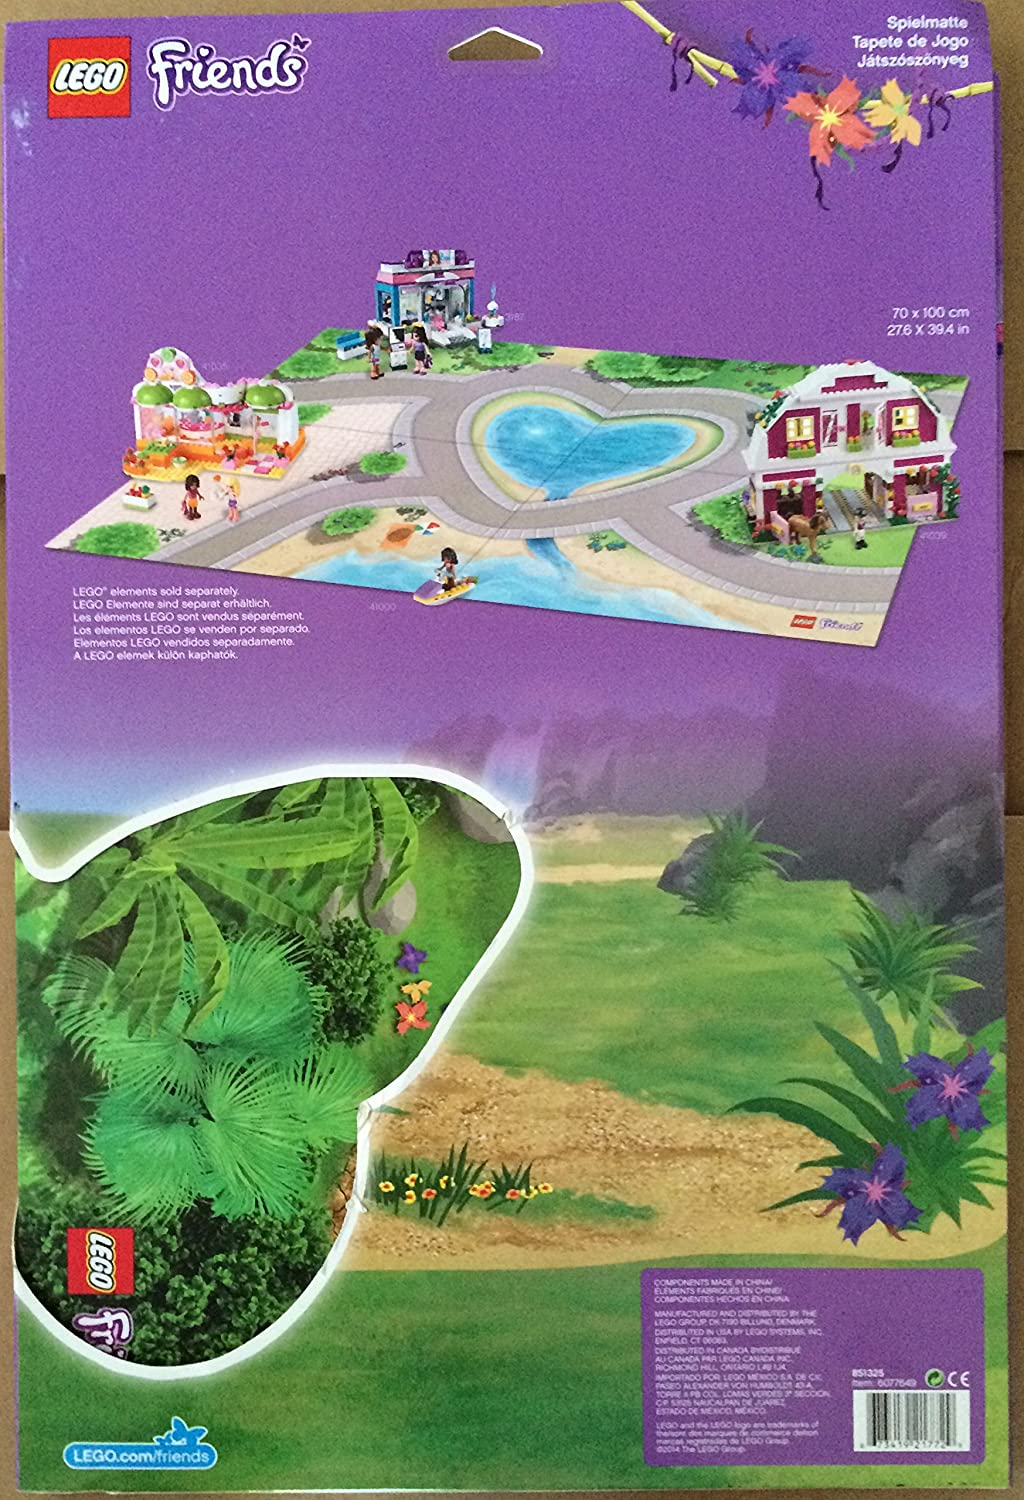 LEGO Friends Playmat 851325